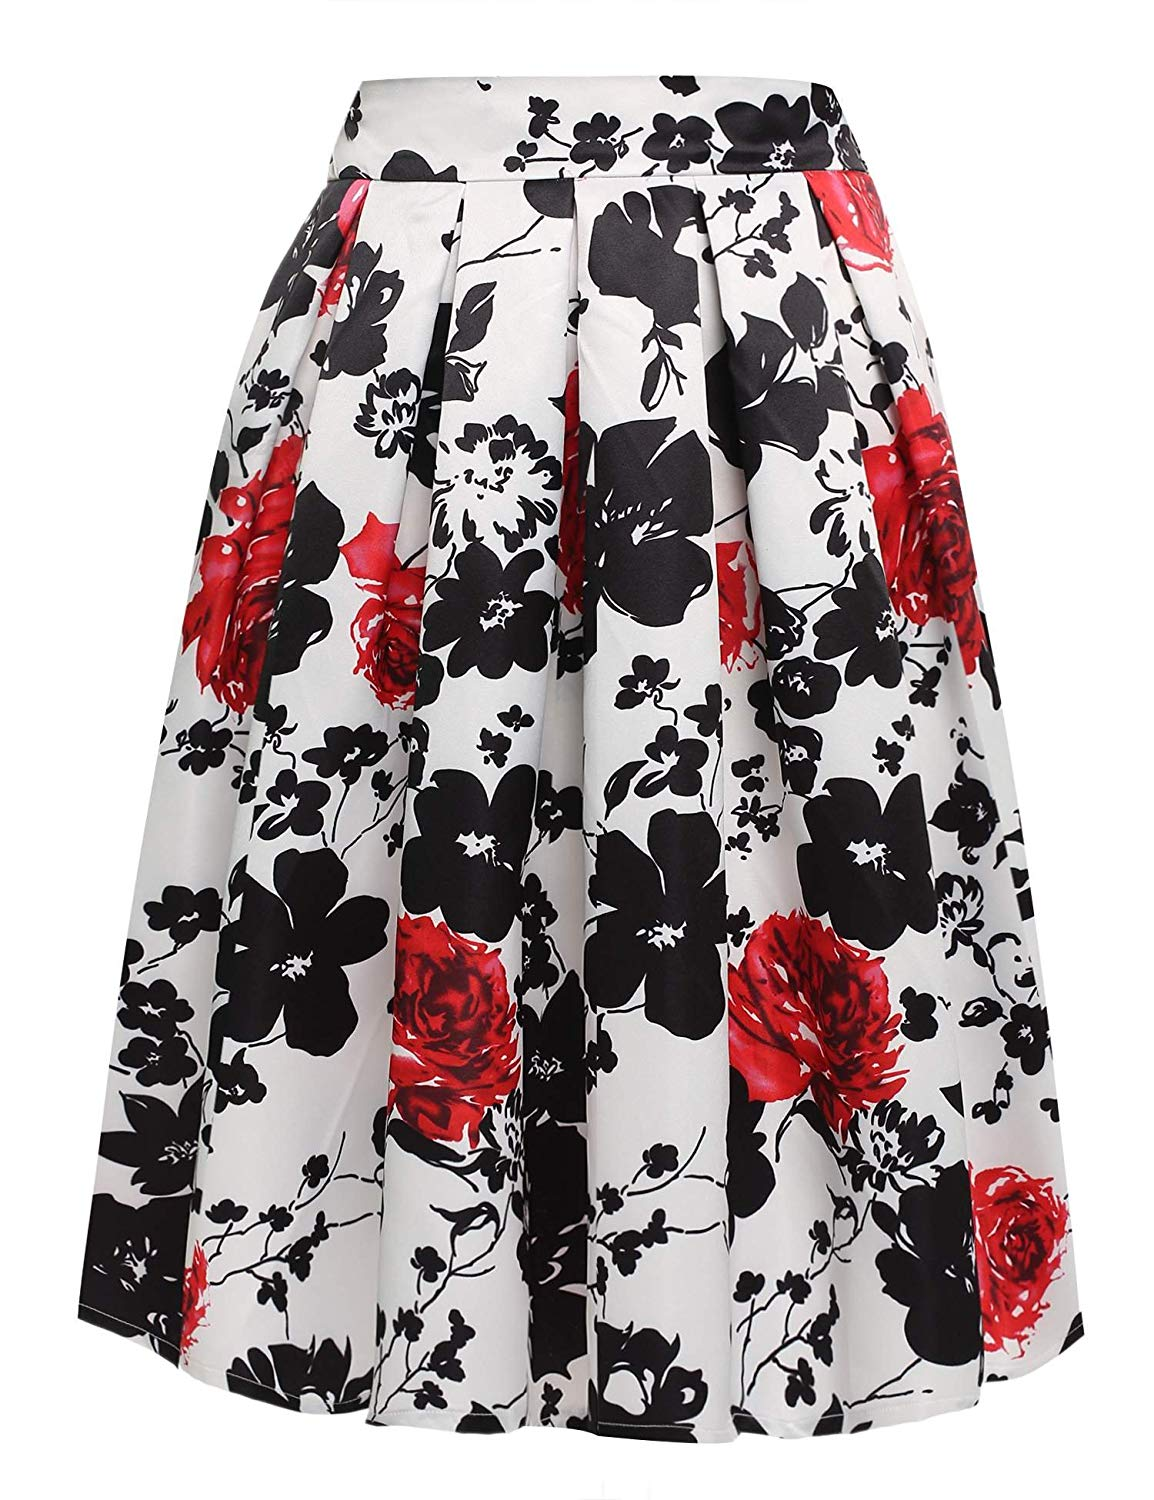 f4300e5fd Get Quotations · ACEVOG Women's Floral Print Skater Midi Skirt With Pleat  A-Line Flared Skirt Dress